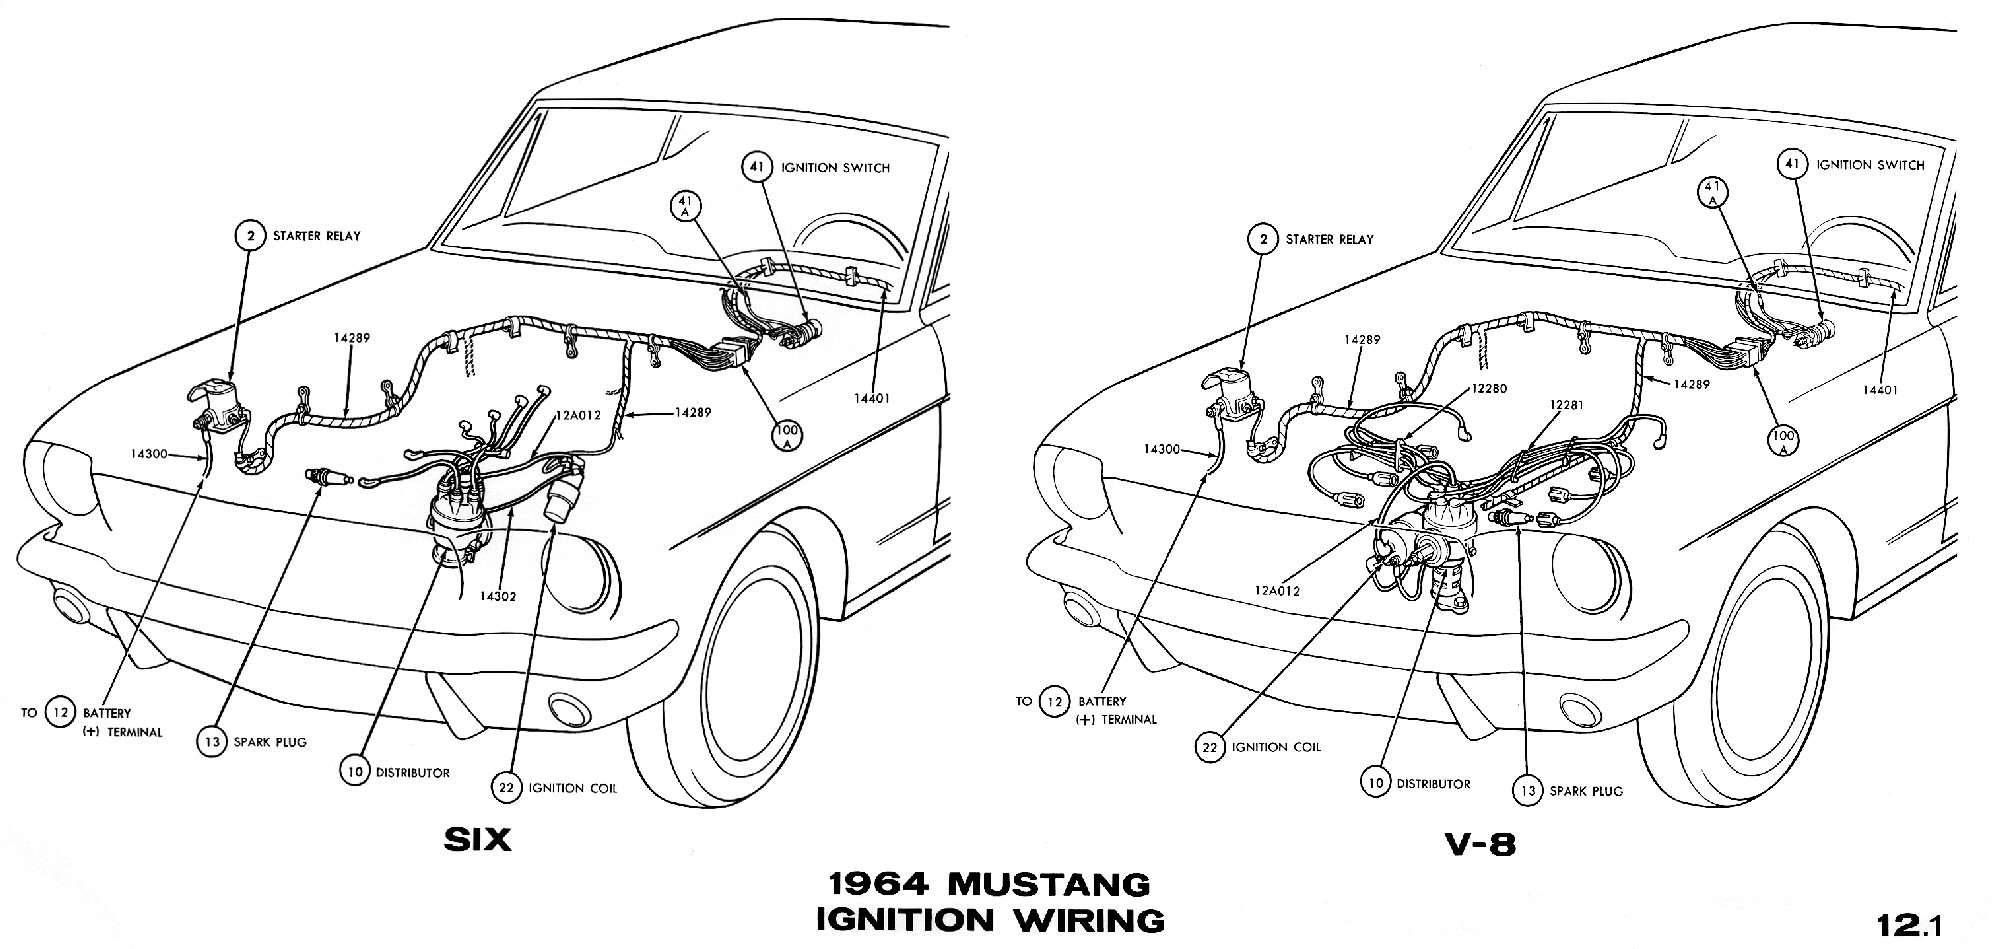 sm1964c 1964 Mustang Ignition Wiring Pictorial